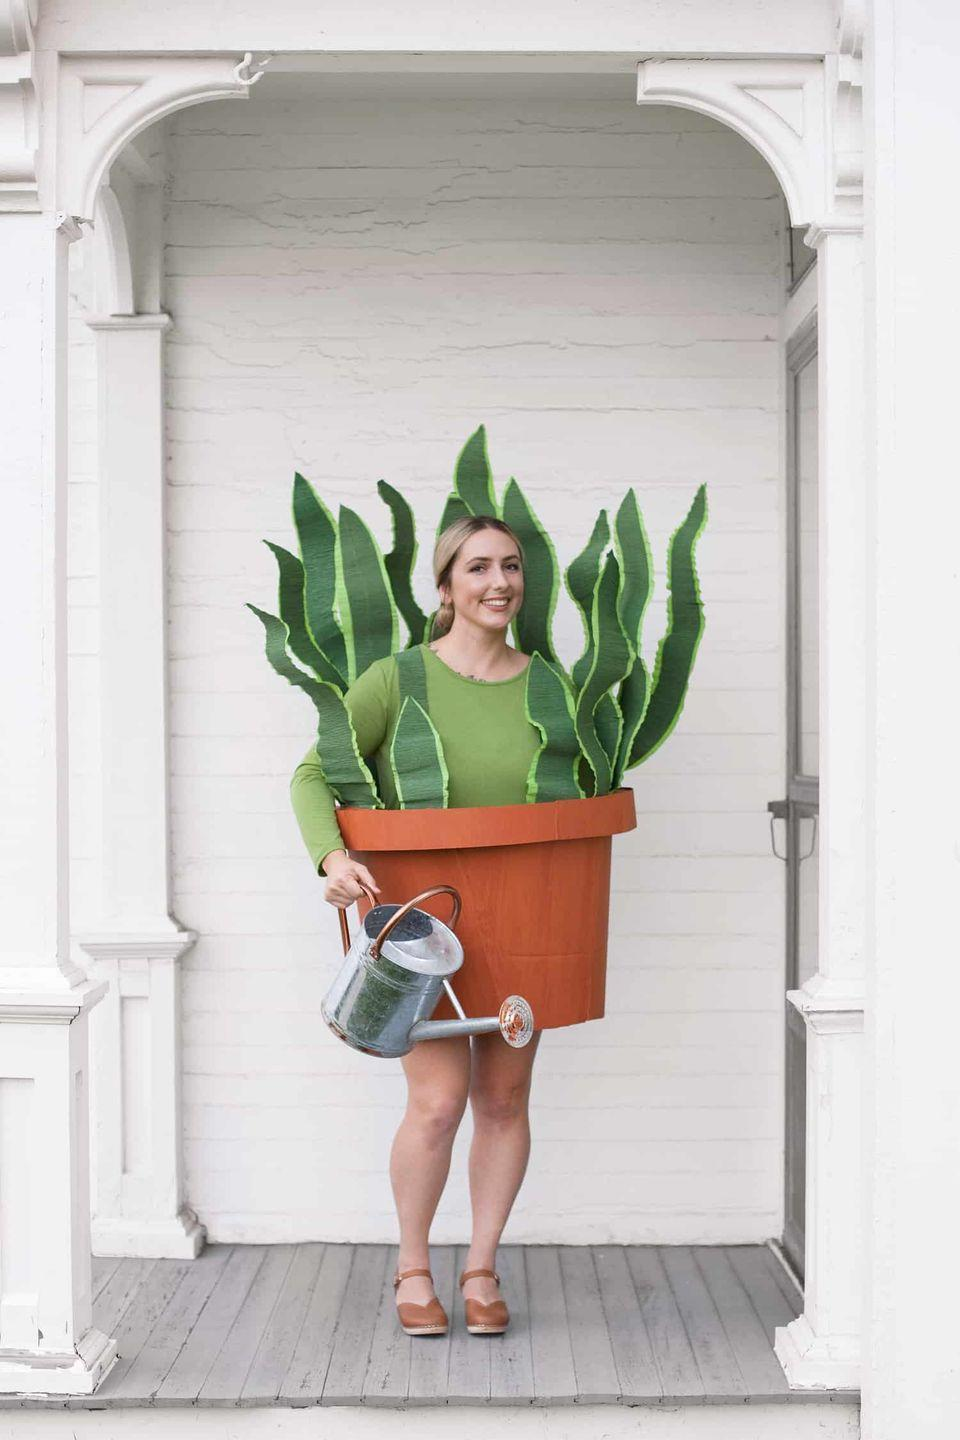 """<p>If you're a proud plant lady, opt for this creative costume. Bulky, a bit—but it's got real first prize potential. </p><p><a class=""""link rapid-noclick-resp"""" href=""""https://abeautifulmess.com/diy-houseplant-boxtume/"""" rel=""""nofollow noopener"""" target=""""_blank"""" data-ylk=""""slk:GET THE TUTORIAL"""">GET THE TUTORIAL</a></p><p><a class=""""link rapid-noclick-resp"""" href=""""https://www.amazon.com/Gildan-womens-Long-Sleeve-T-Shirt-GREEN-M/dp/B00BJM3WSK?tag=syn-yahoo-20&ascsubtag=%5Bartid%7C10072.g.33547559%5Bsrc%7Cyahoo-us"""" rel=""""nofollow noopener"""" target=""""_blank"""" data-ylk=""""slk:SHOP GREEN TEE"""">SHOP GREEN TEE</a></p>"""